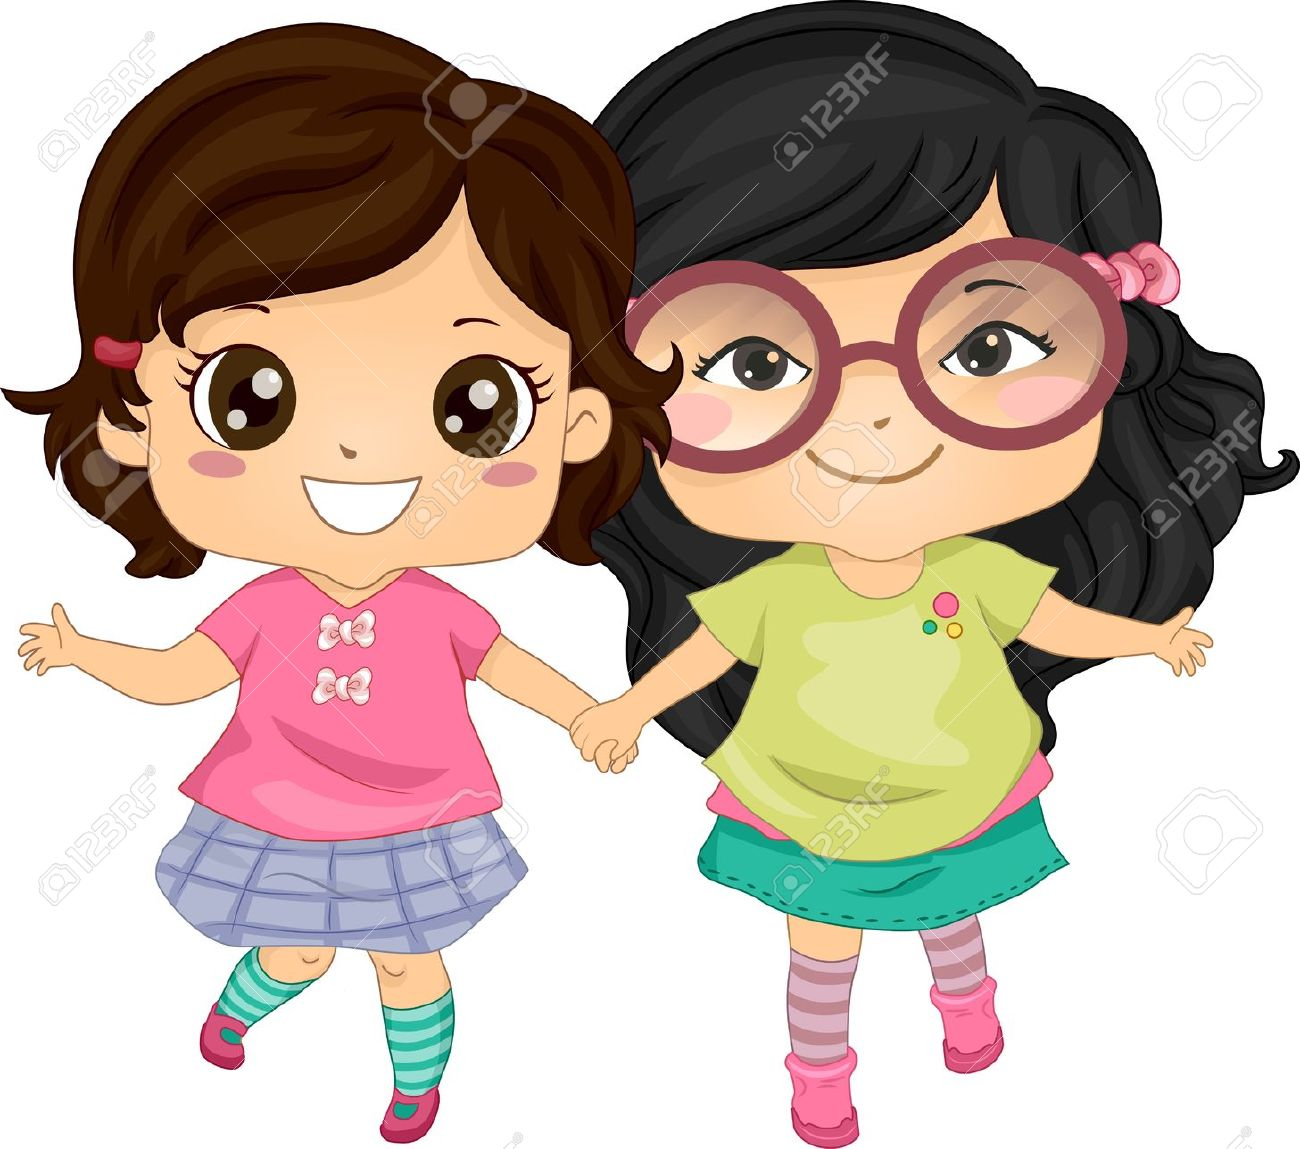 1,577 Girls Best Friend Stock Vector Illustration And Royalty Free.